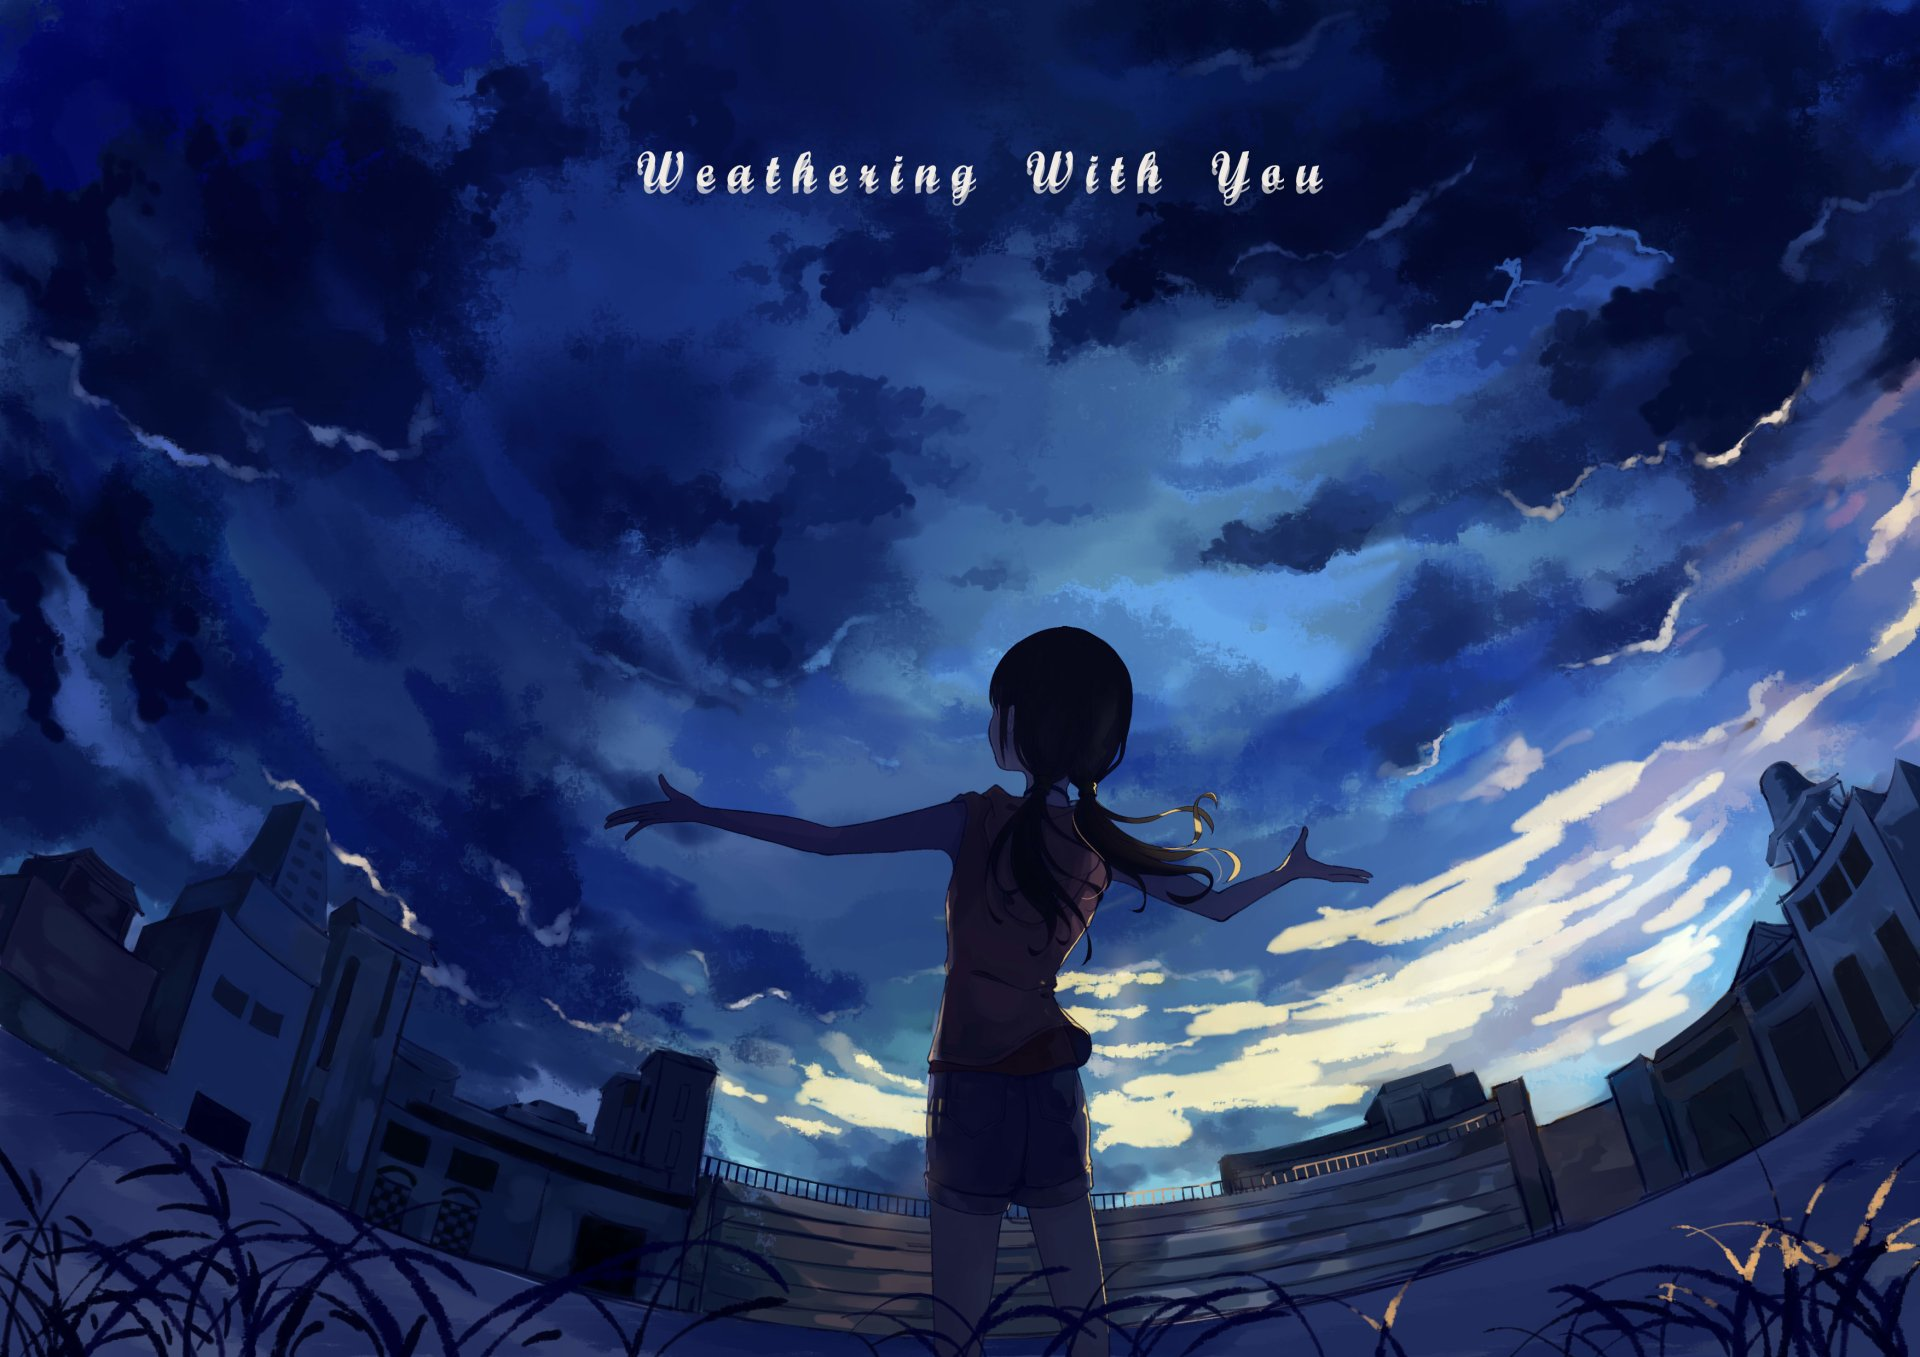 Weathering With You Wallpaper Posted By Ryan Cunningham